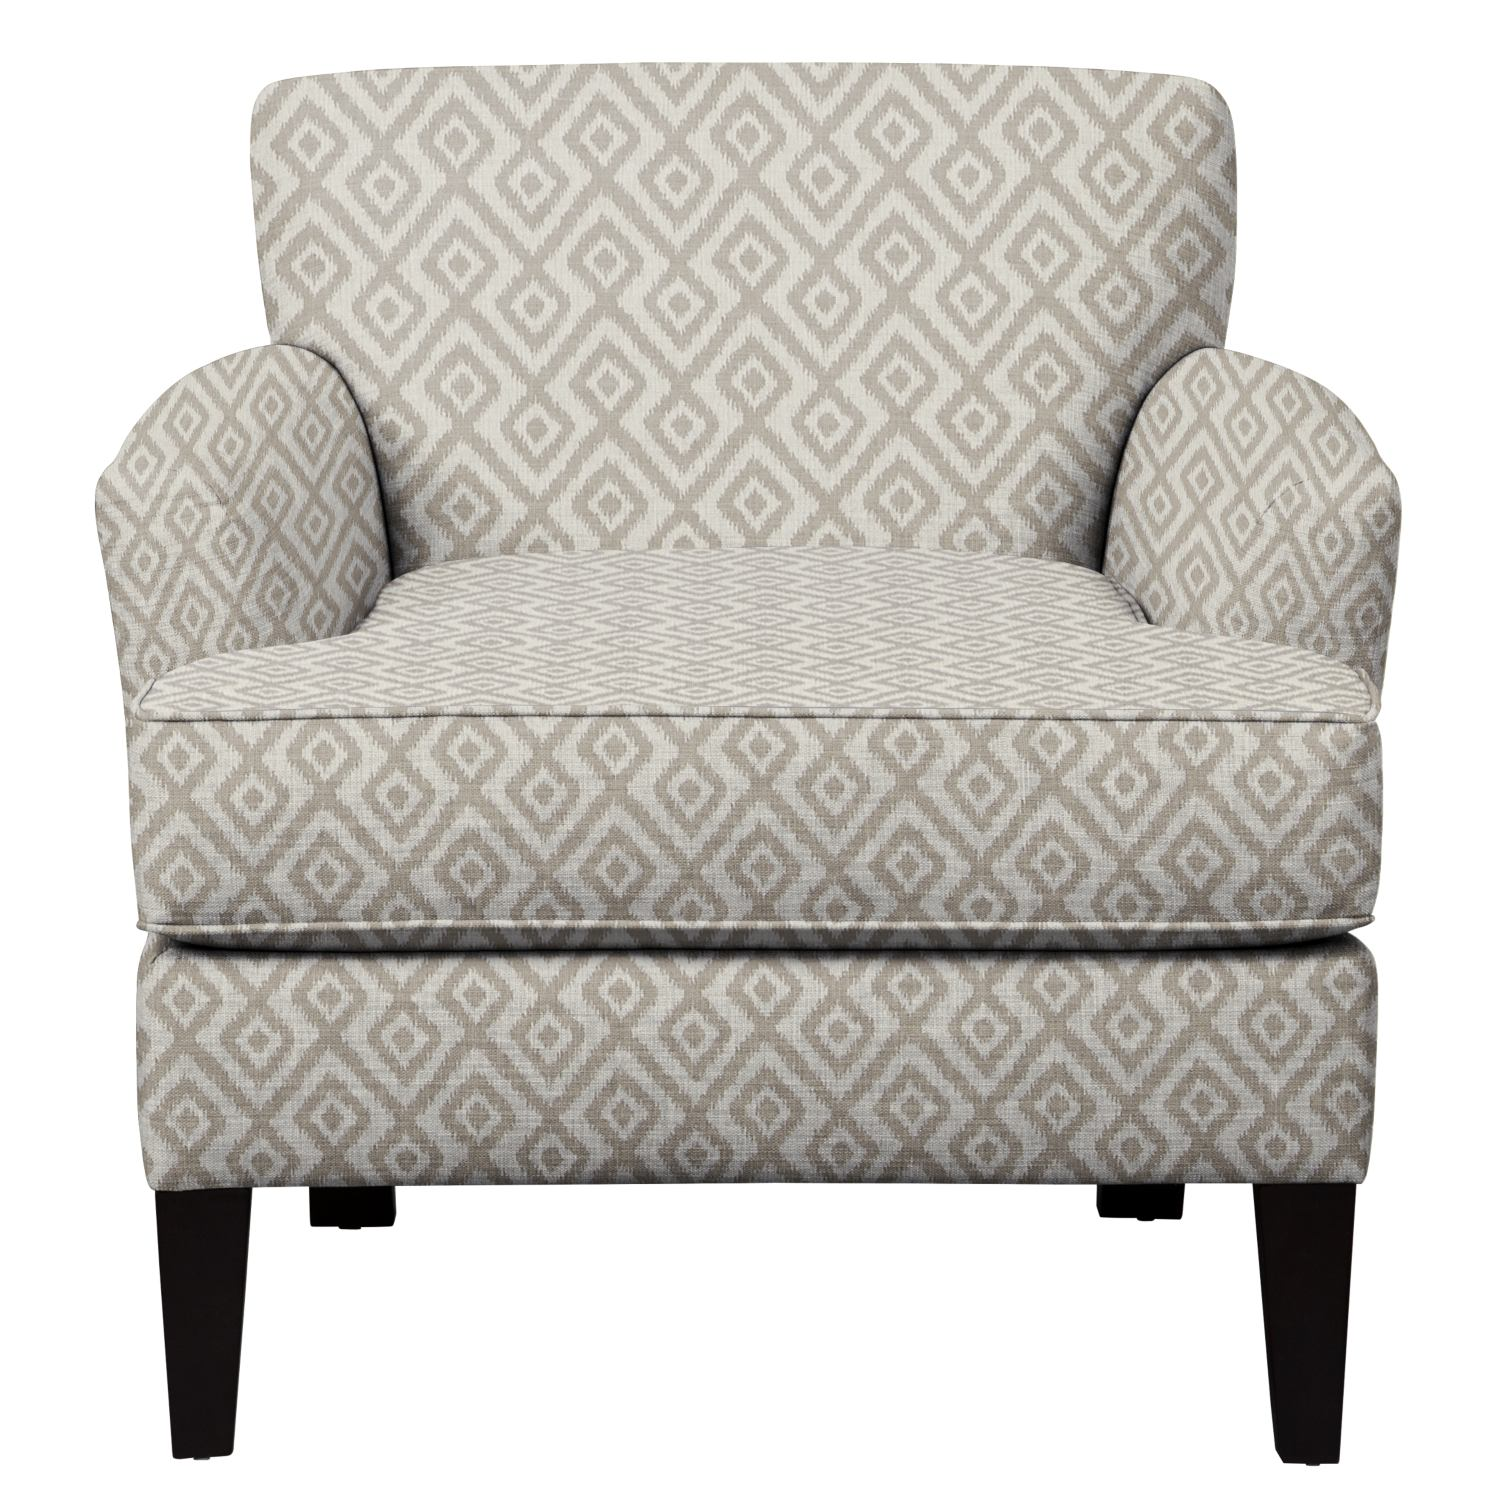 Living Room Furniture - Marcus Chair w/ Tate Dove Fabric